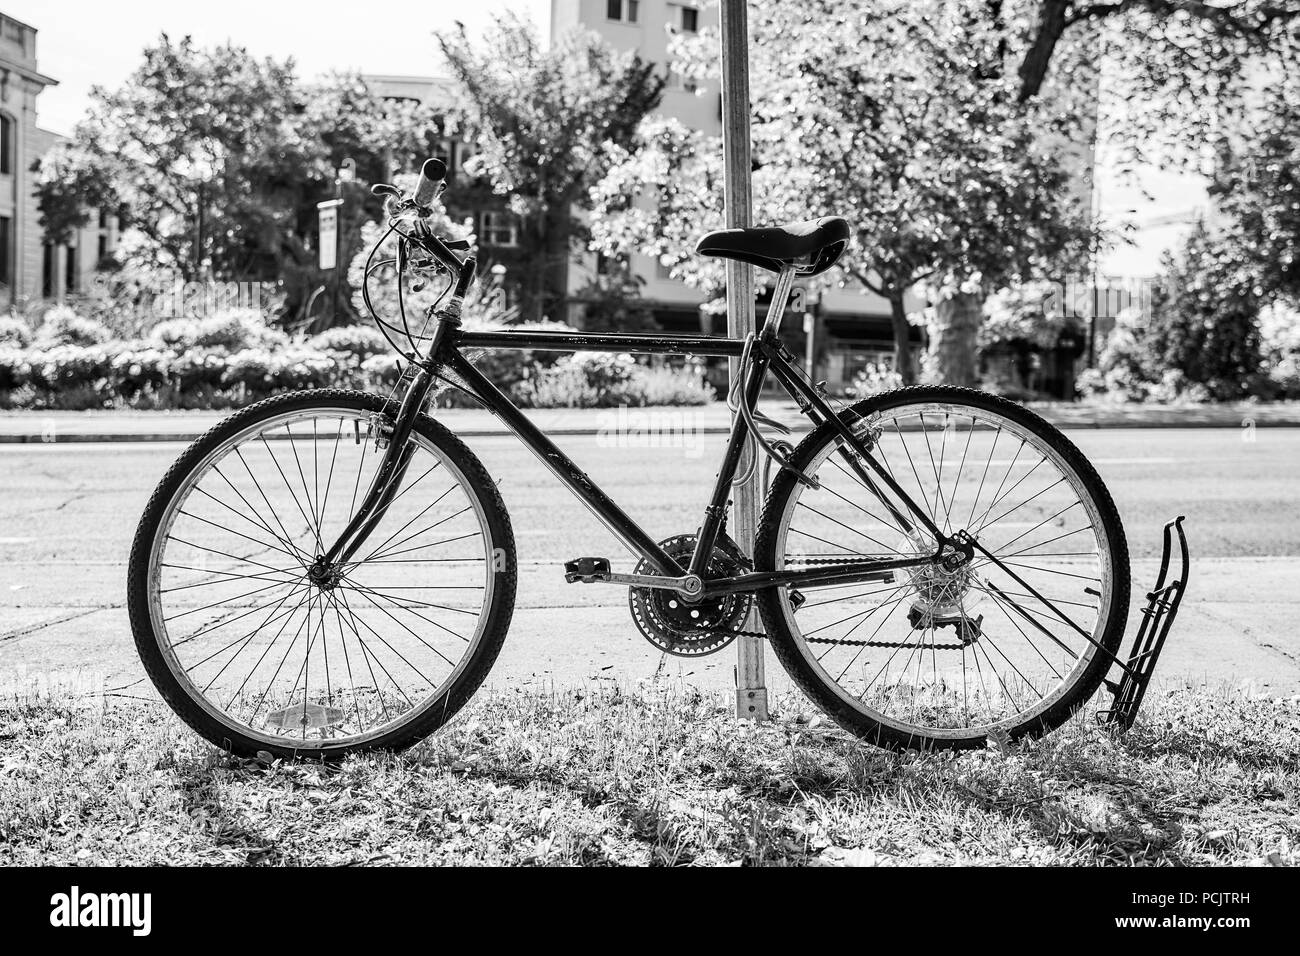 Black and white photo of an old vintage black bicycle parked in a parking rack near the road - Stock Image